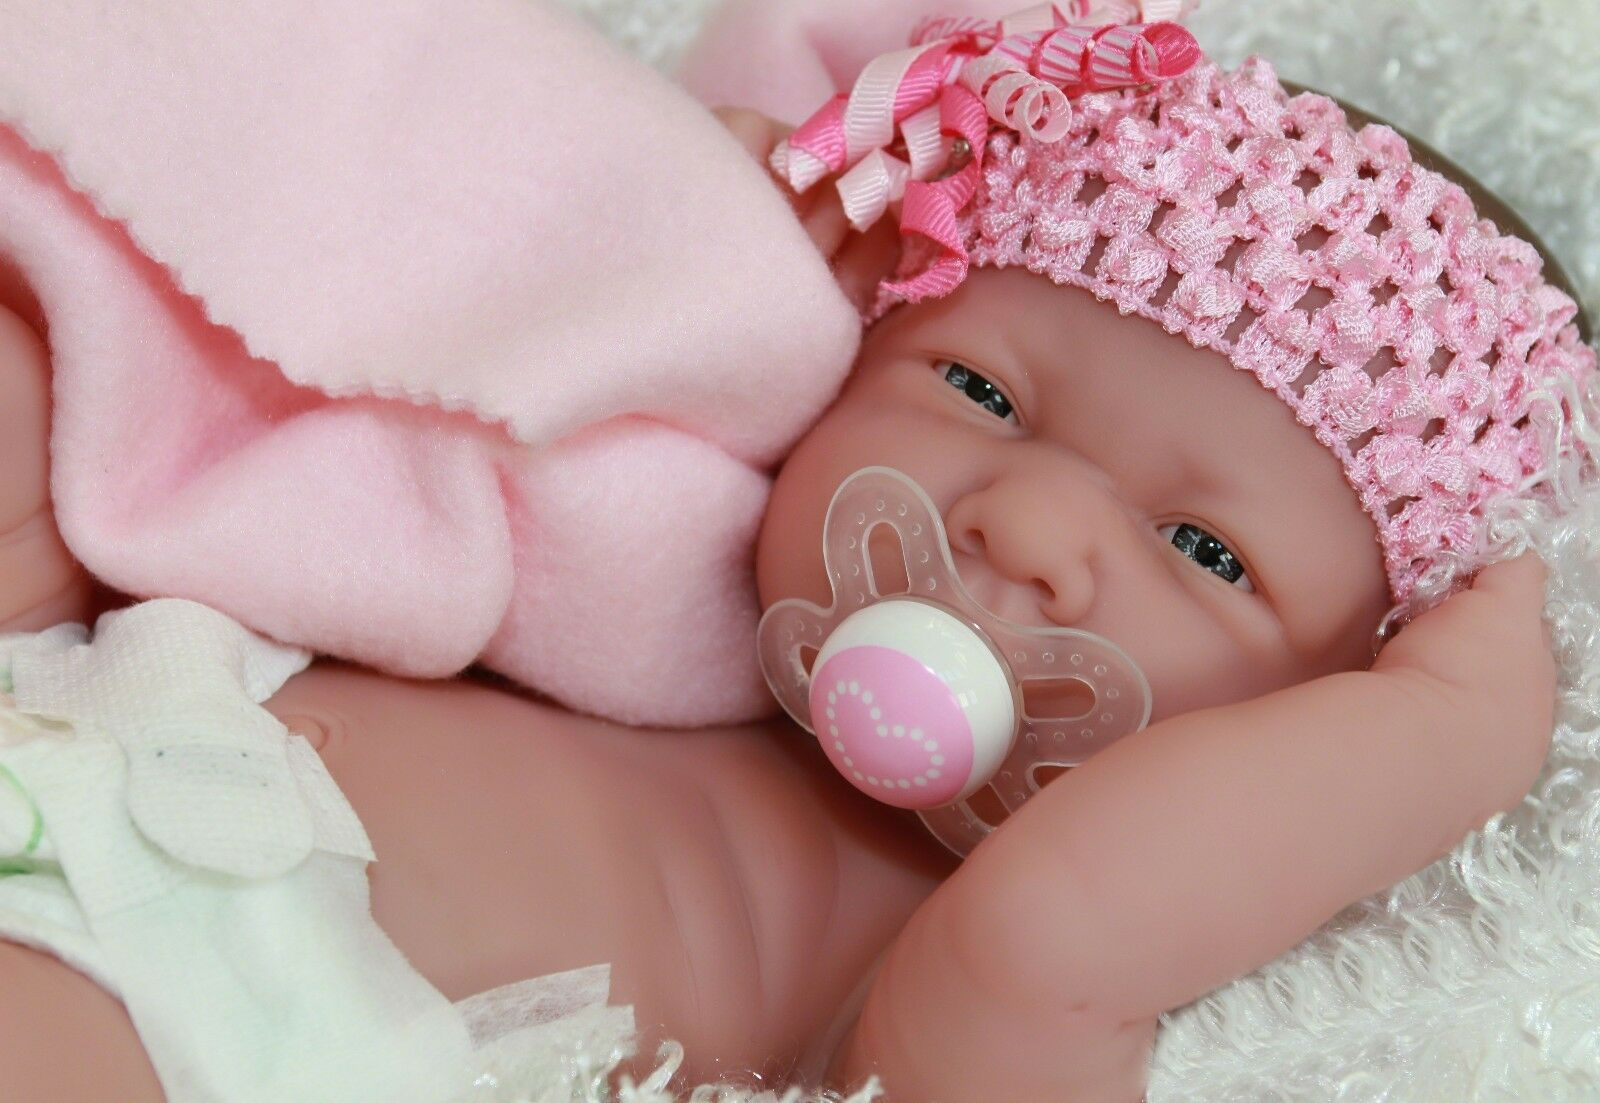 NEW~ Precious Preemie Berenguer La Newborn Doll + Extras - Over 2000+ SOLD